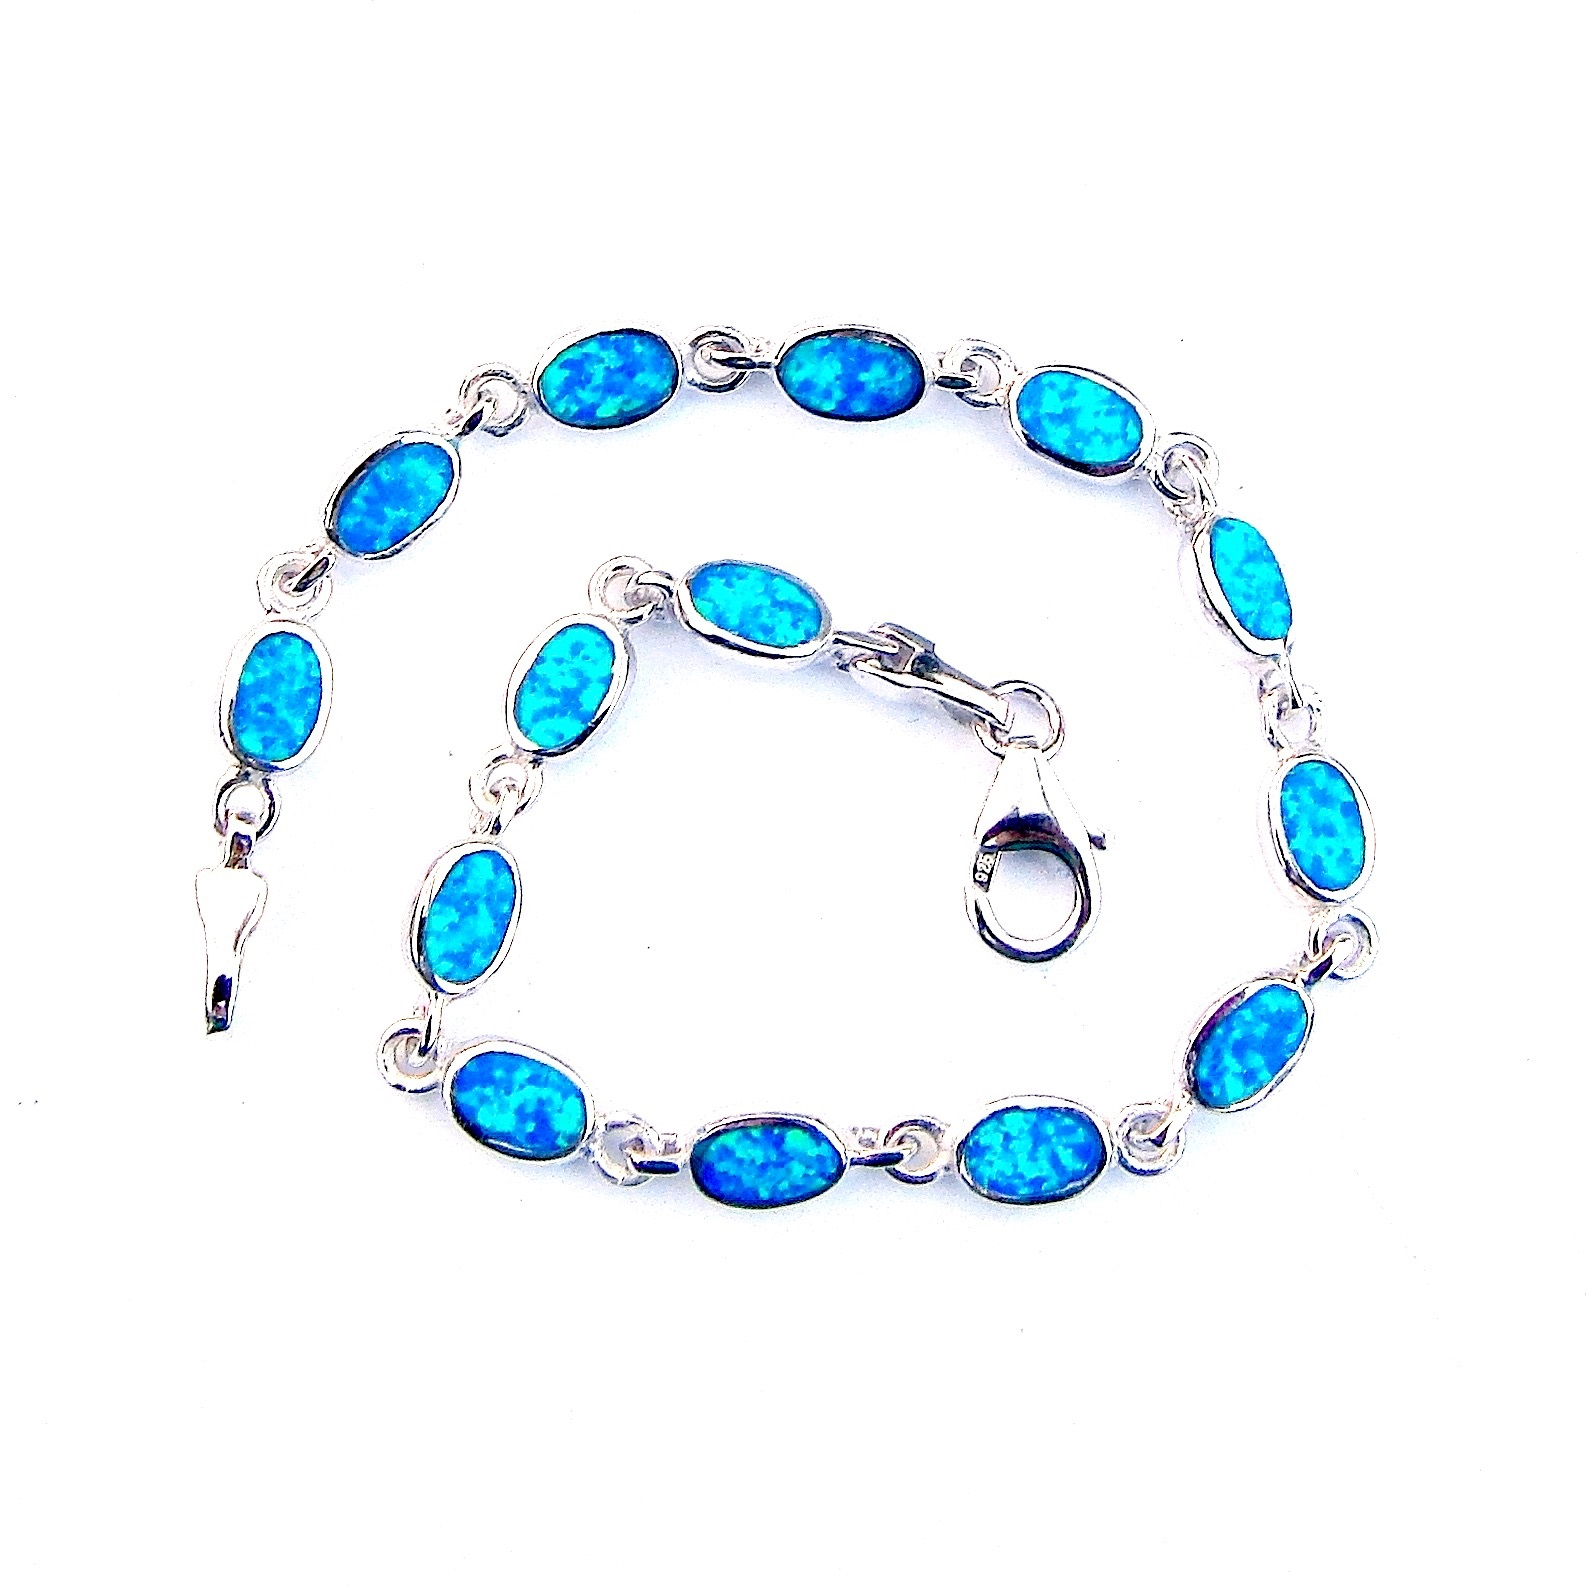 Absolutely Stunning Blue Opal Oval Bracelet